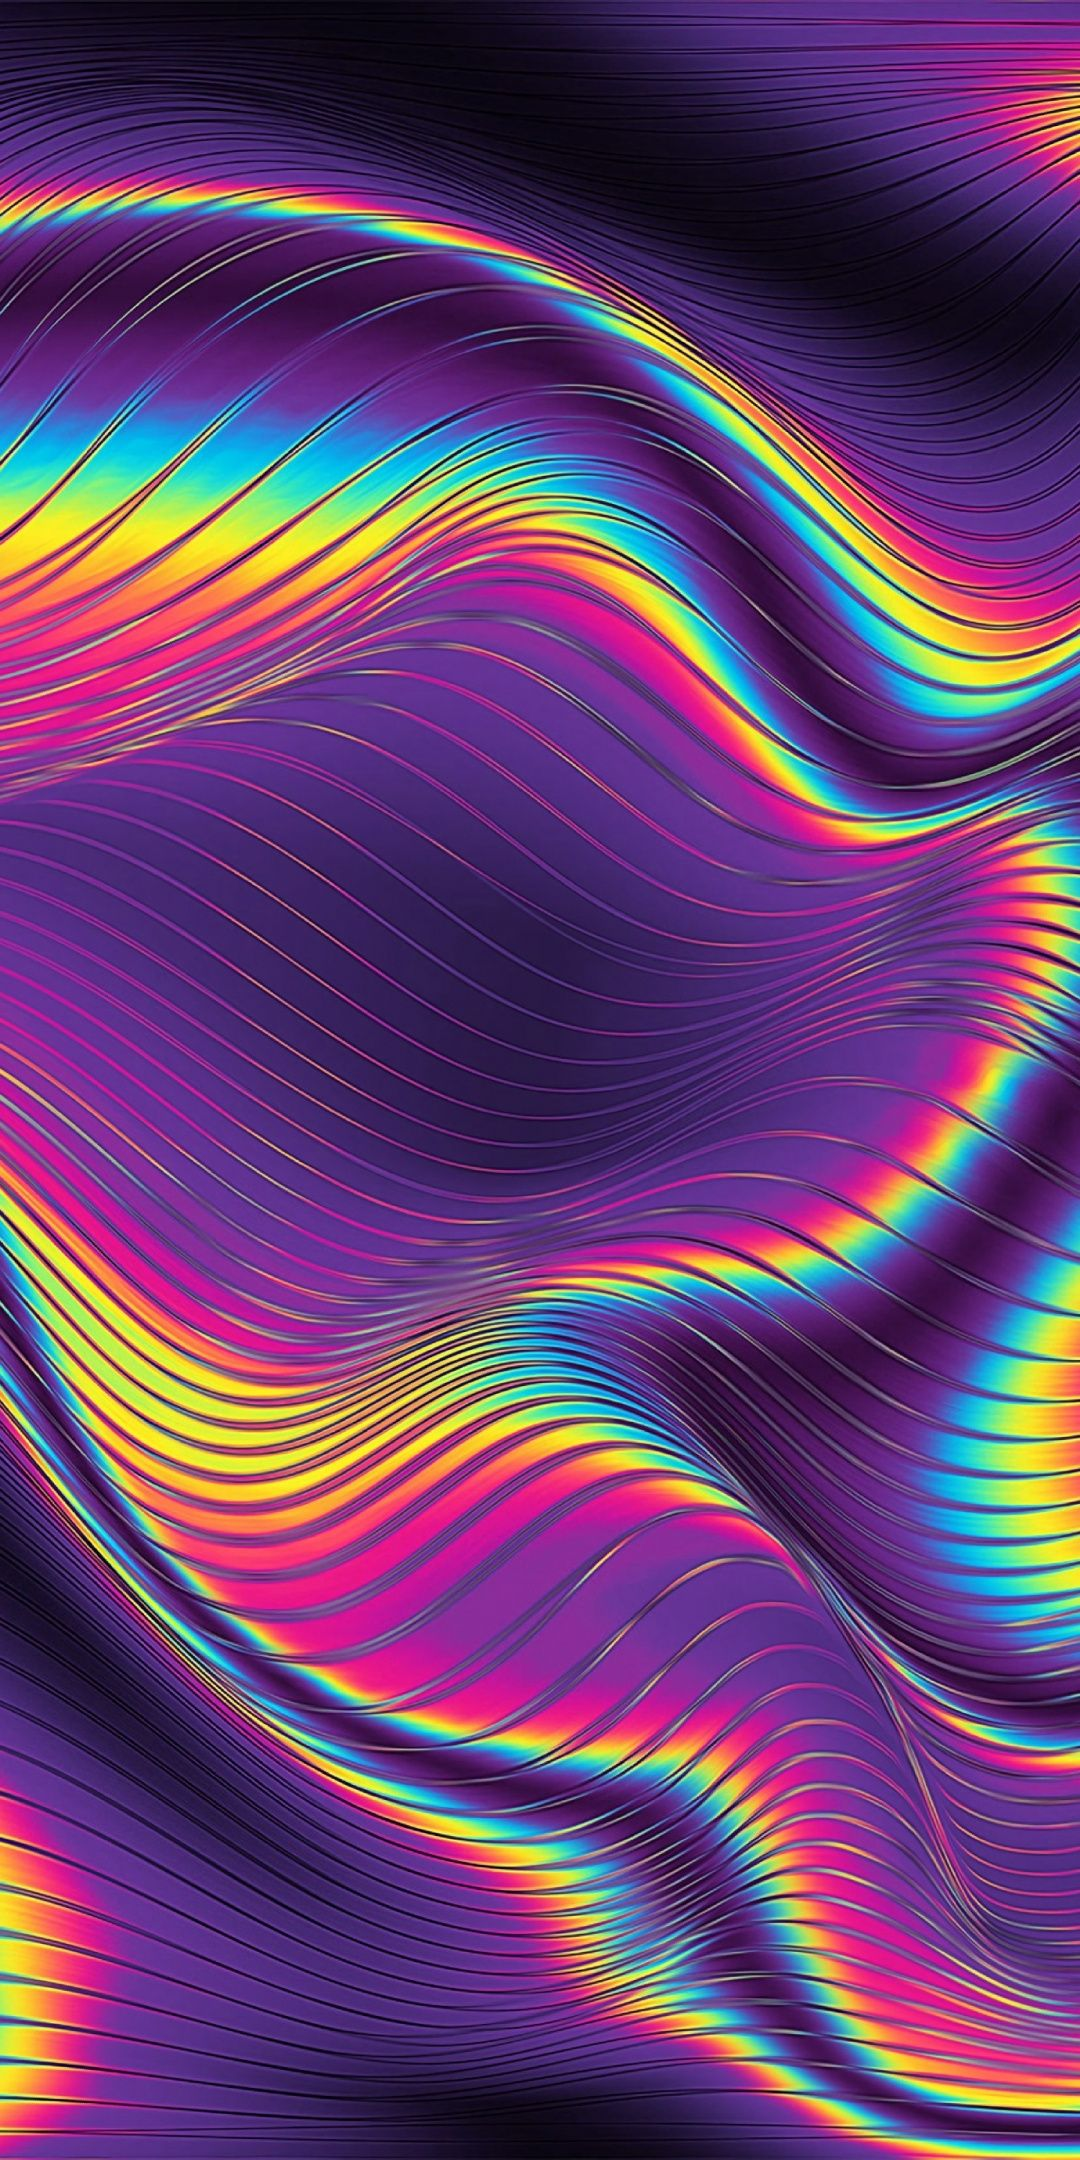 Bright, glowing curves, metallic, texture, 1080x2160 wallpaper